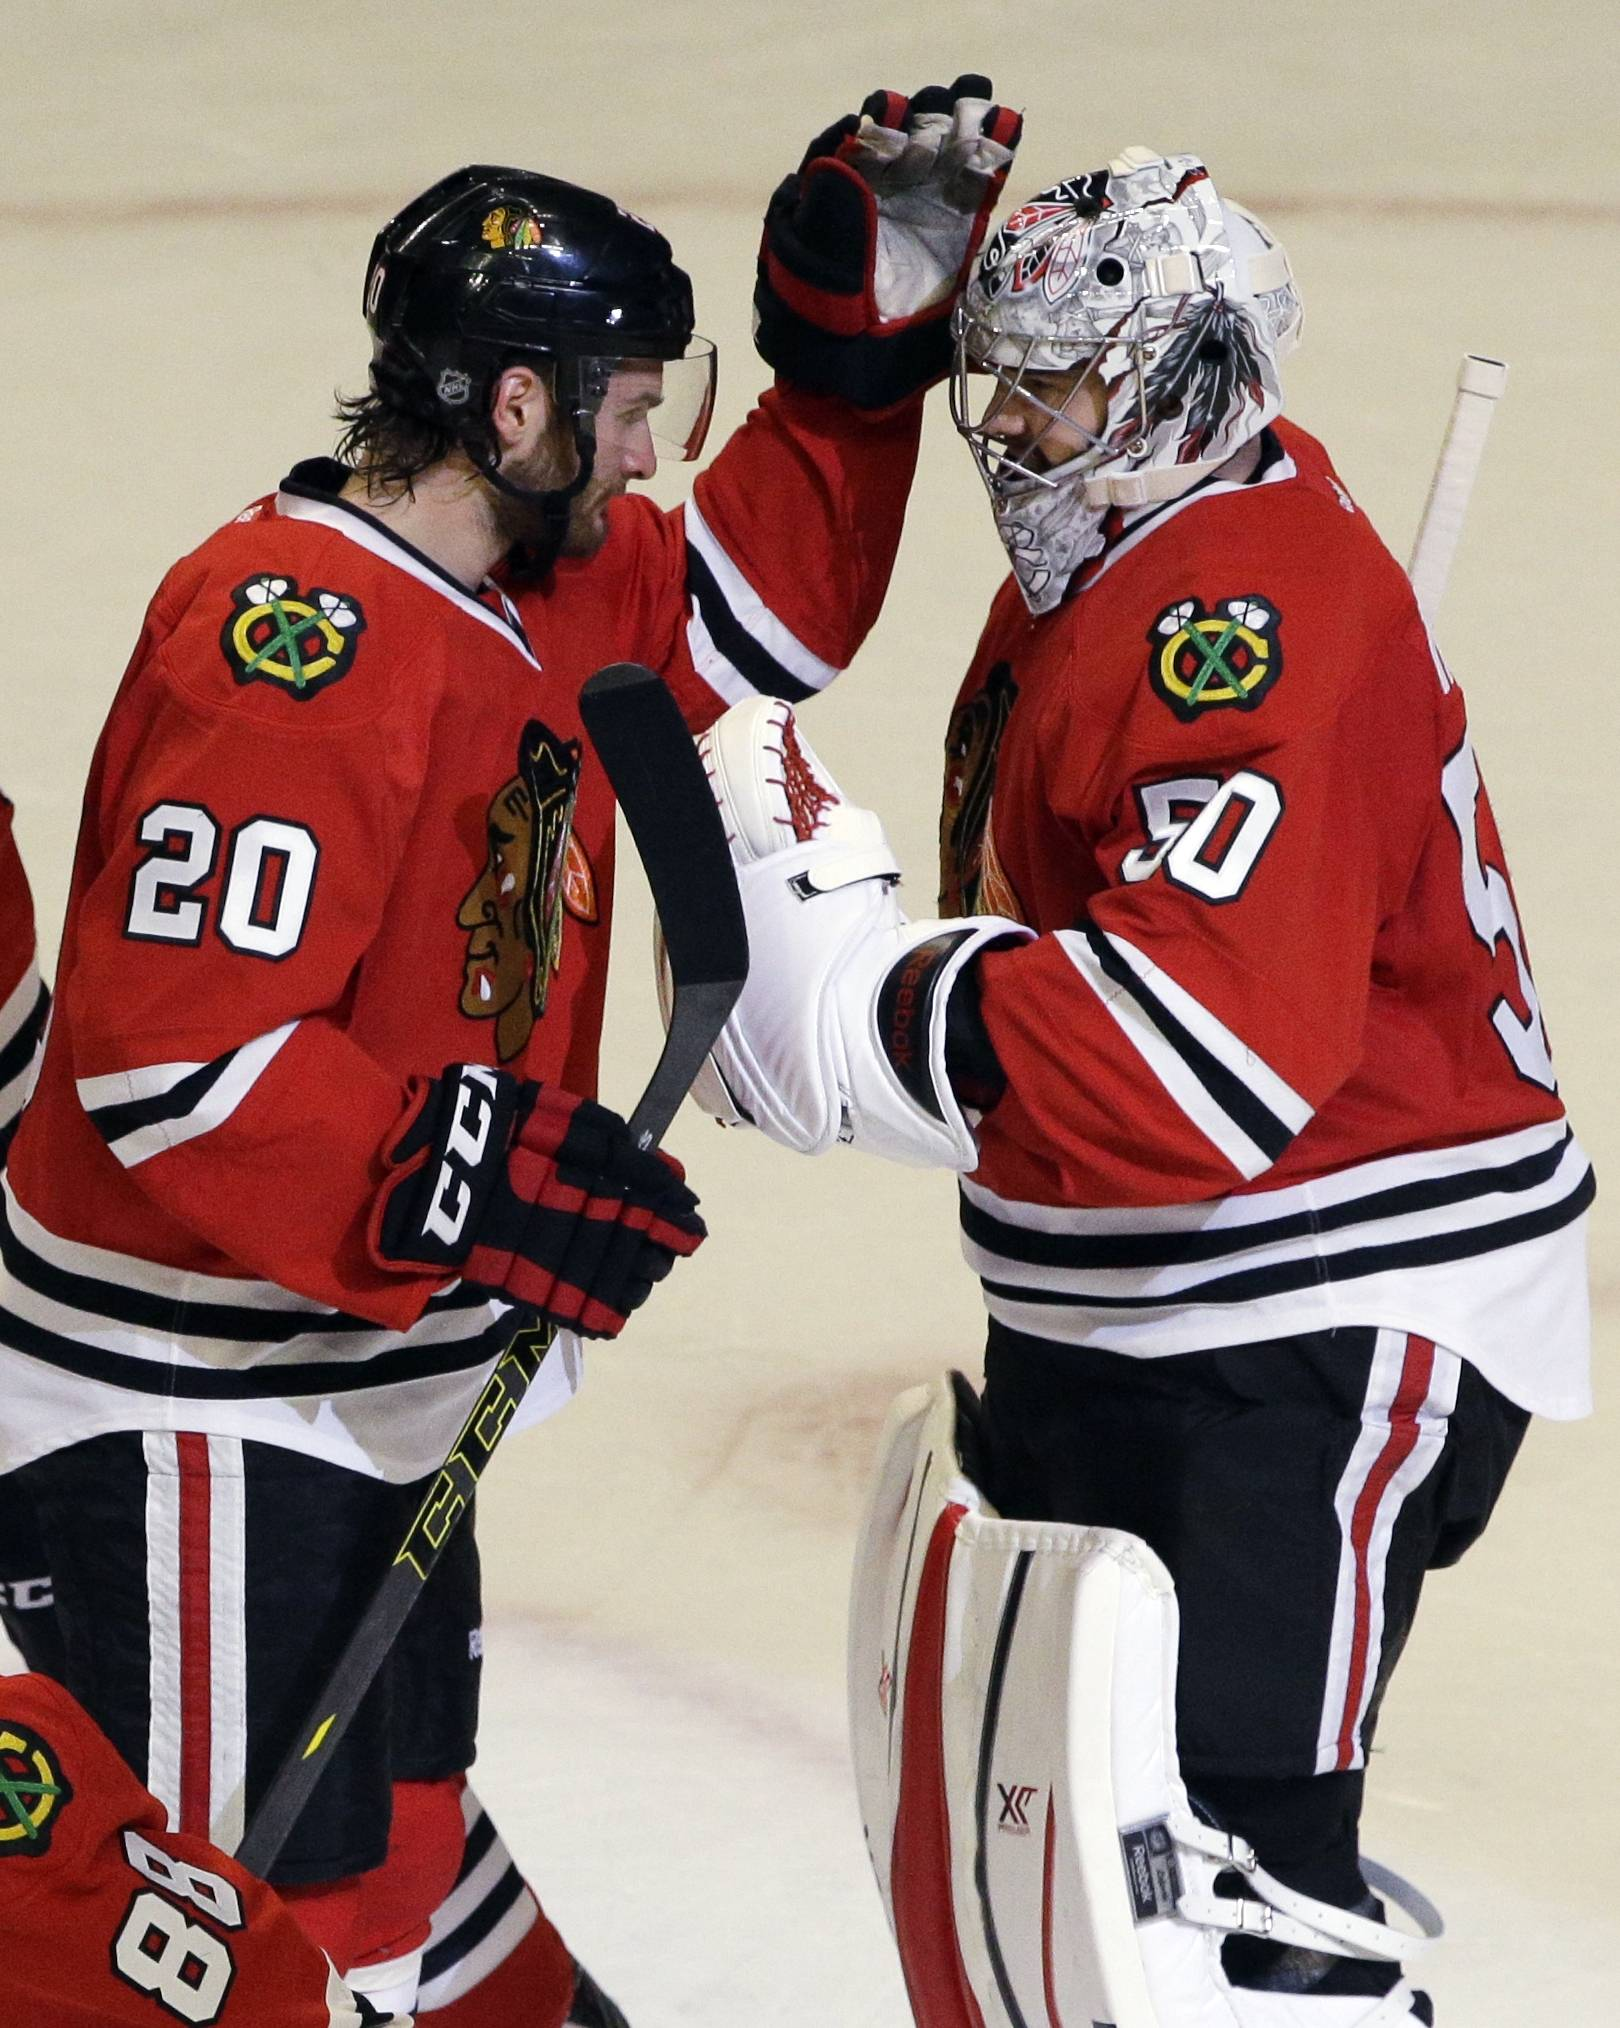 Crawford's numbers adding up for Blackhawks